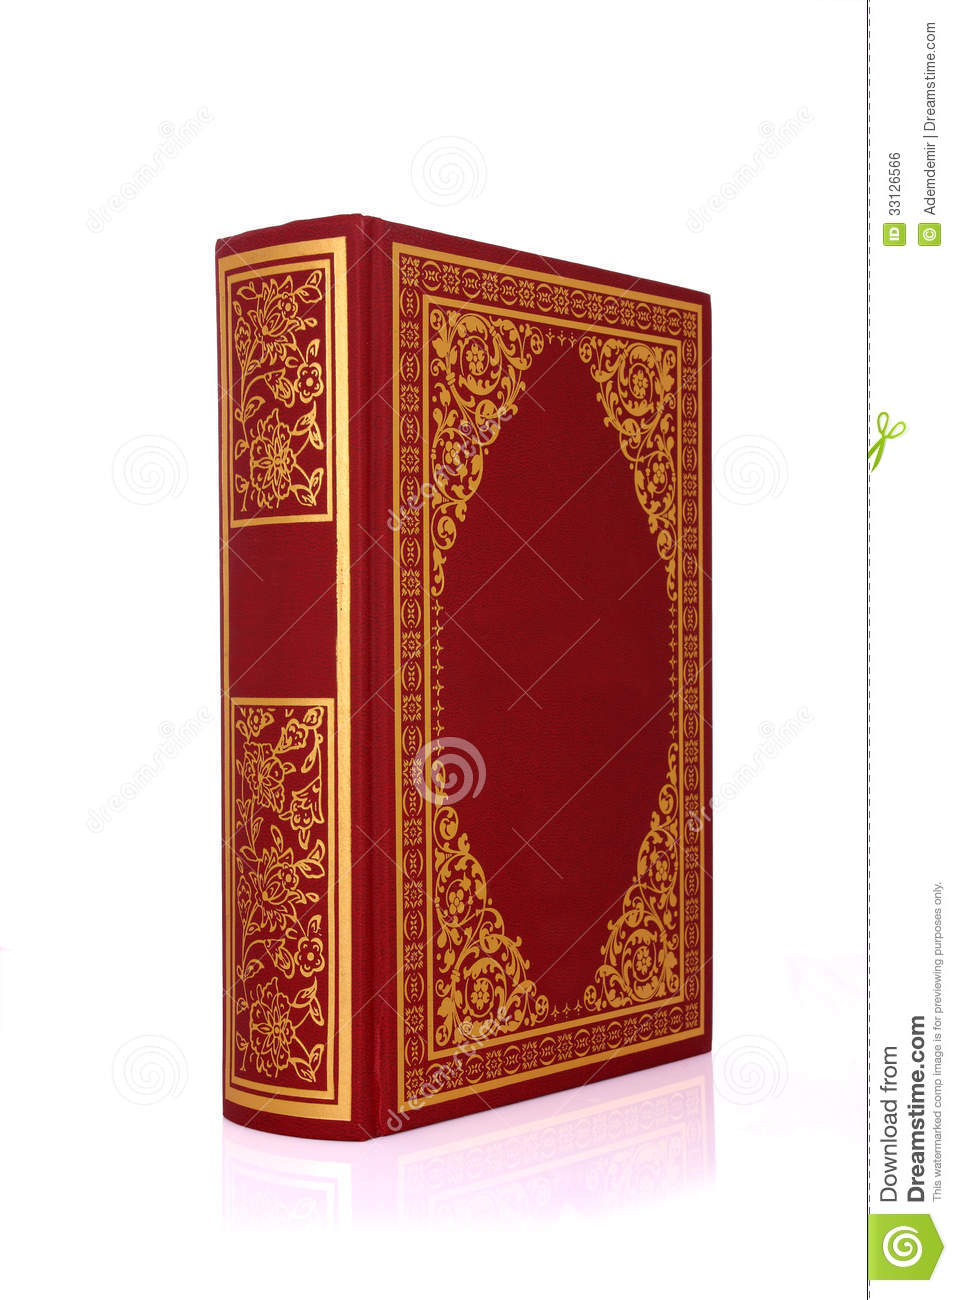 Old Red Book Cover ~ Old red book with gold color ornament on cover isolated